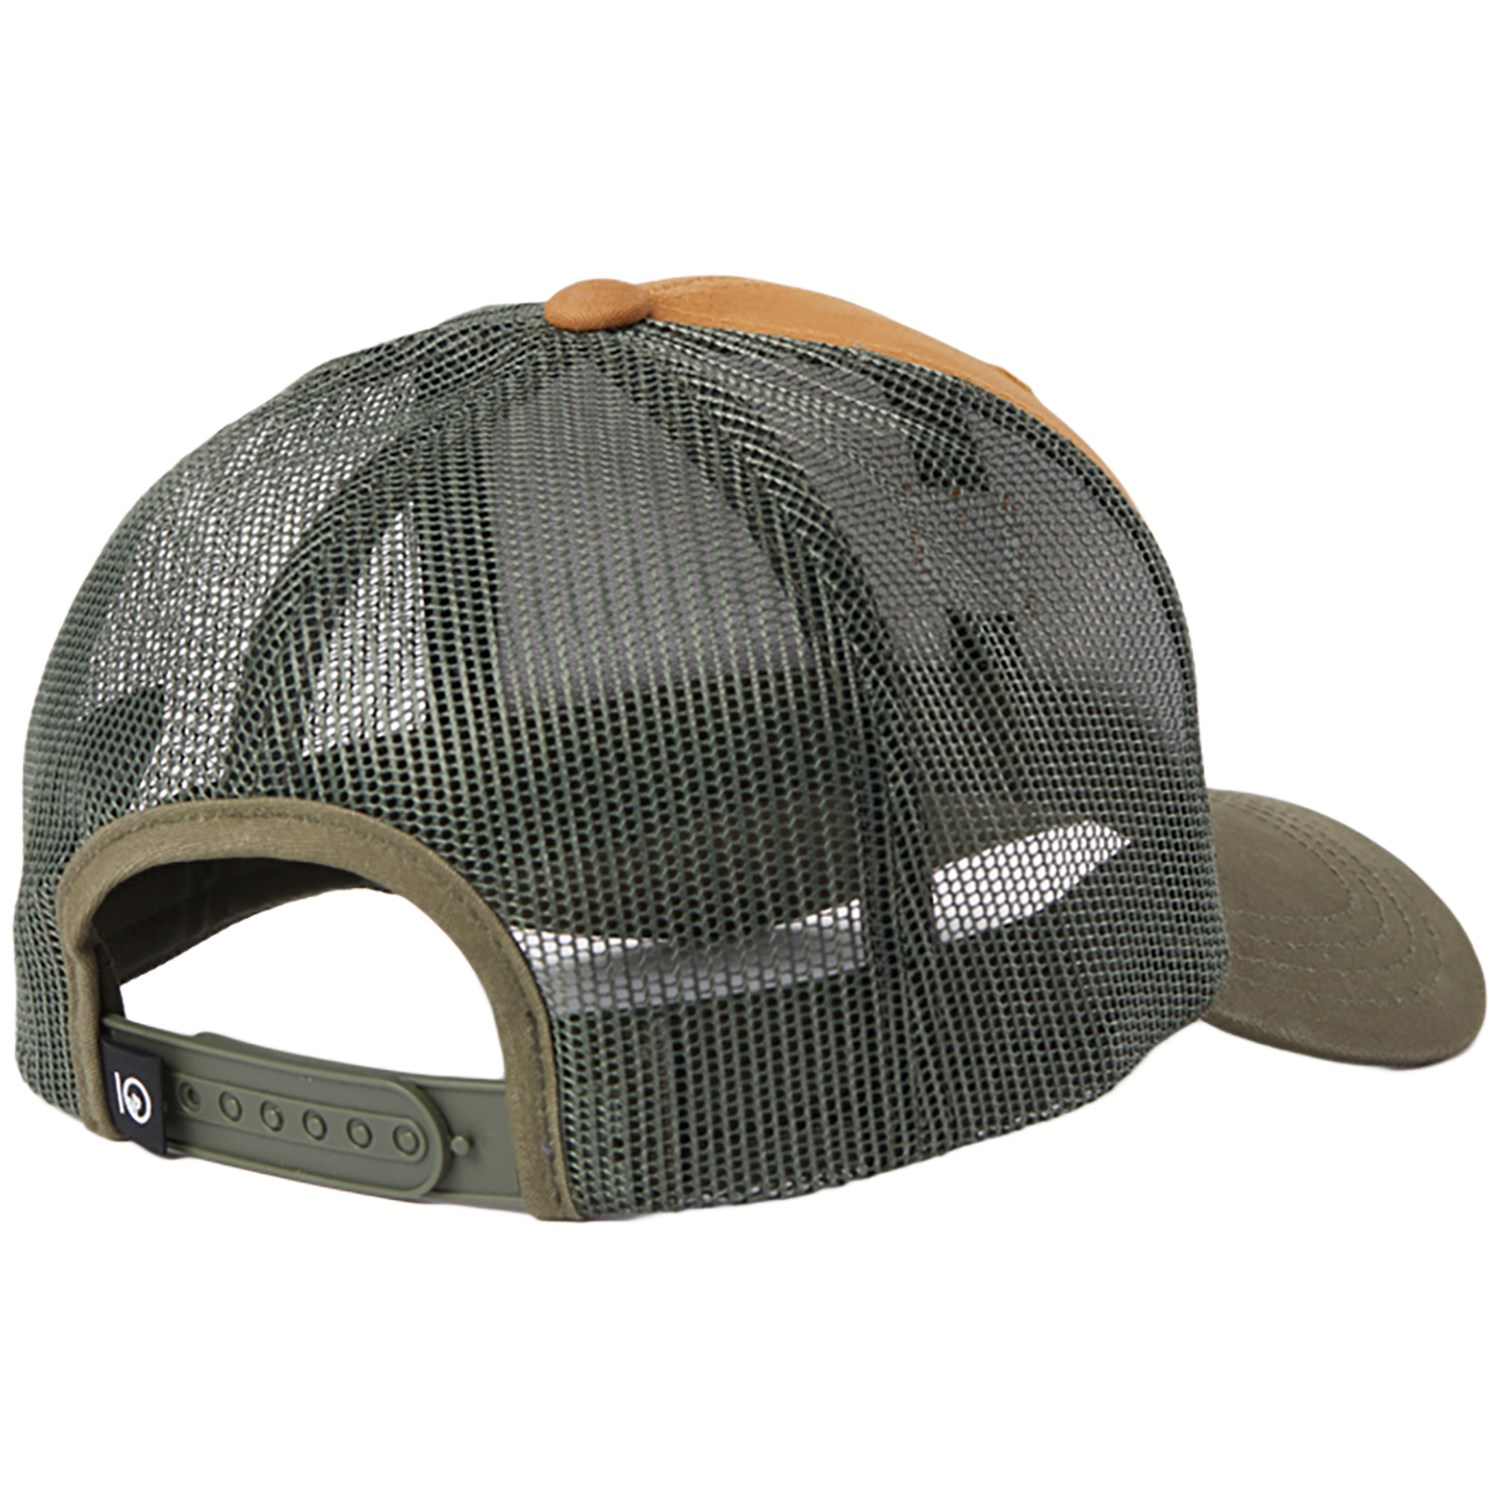 timeless design b3e57 d0d59 ... buy tentree elevation hat evo e3e74 3ce8b